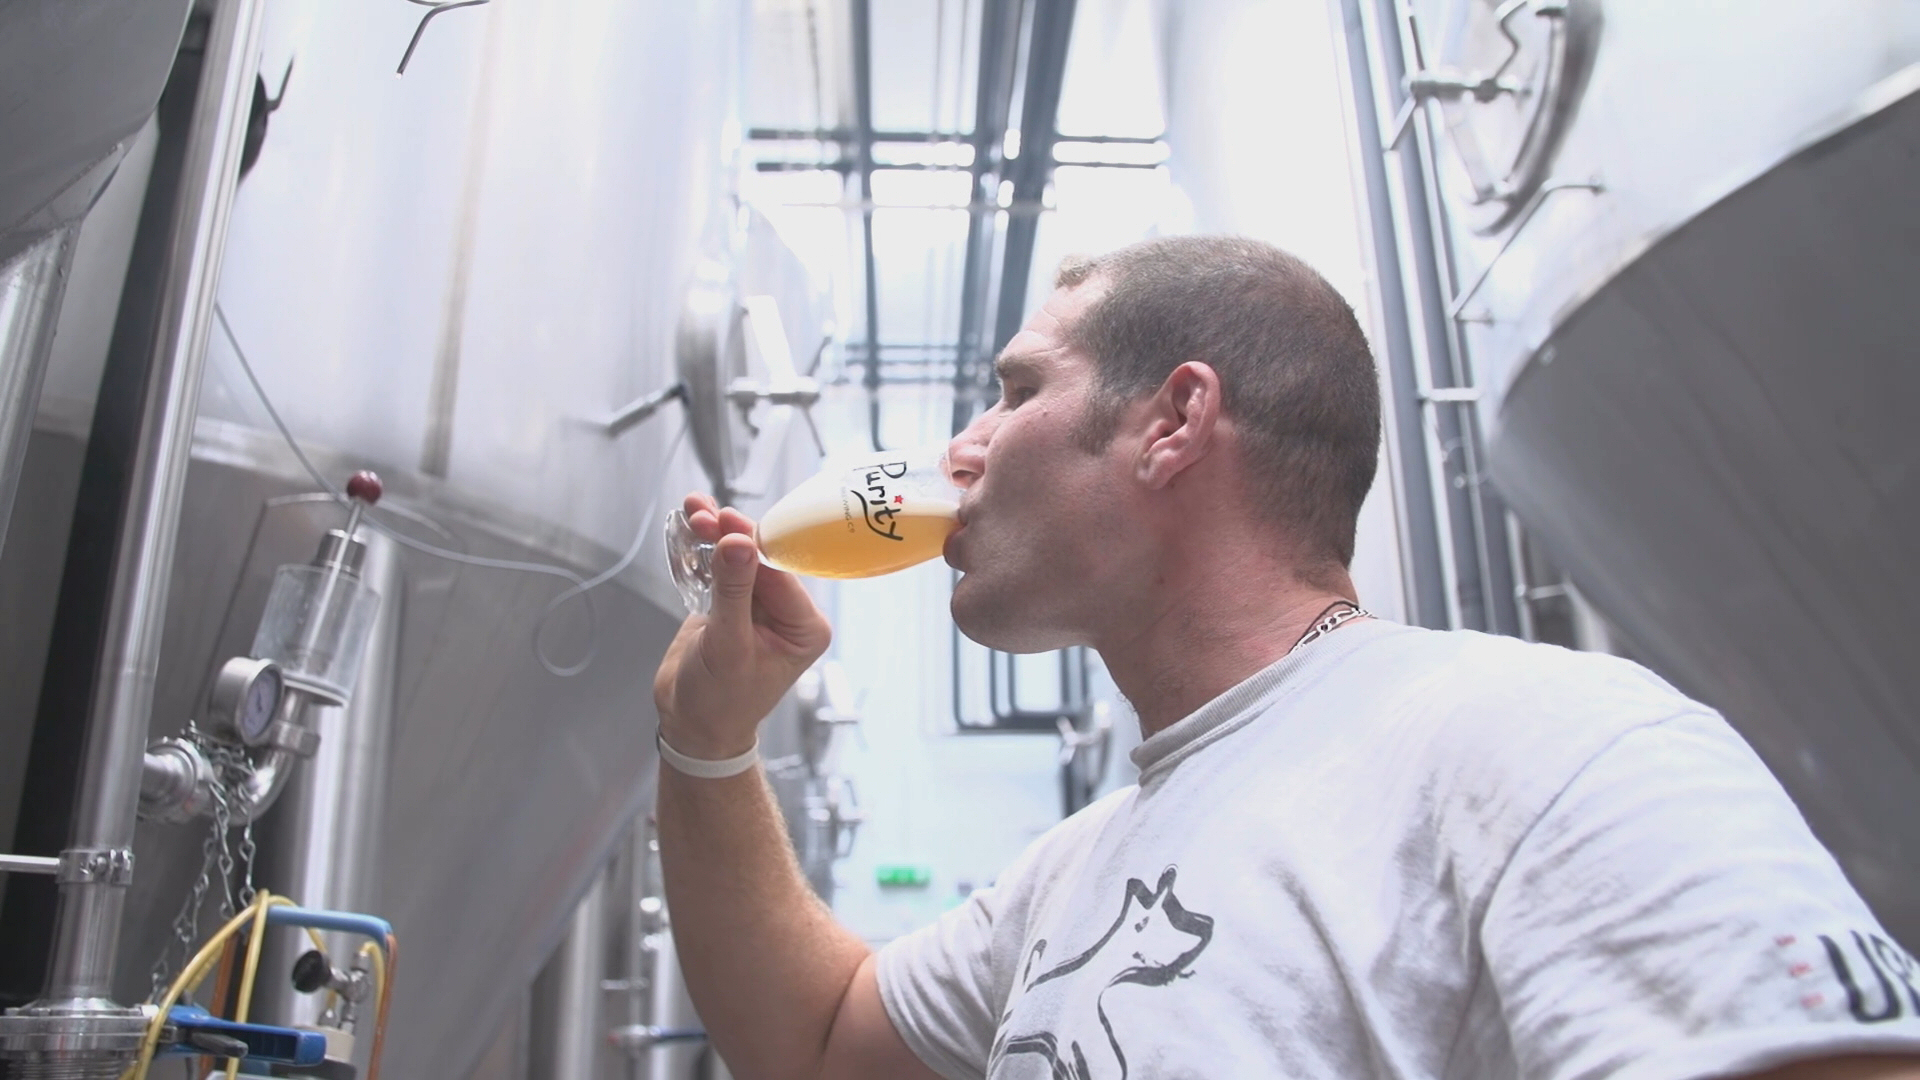 Purity Brewing Co – What's their magic ingredient to success?